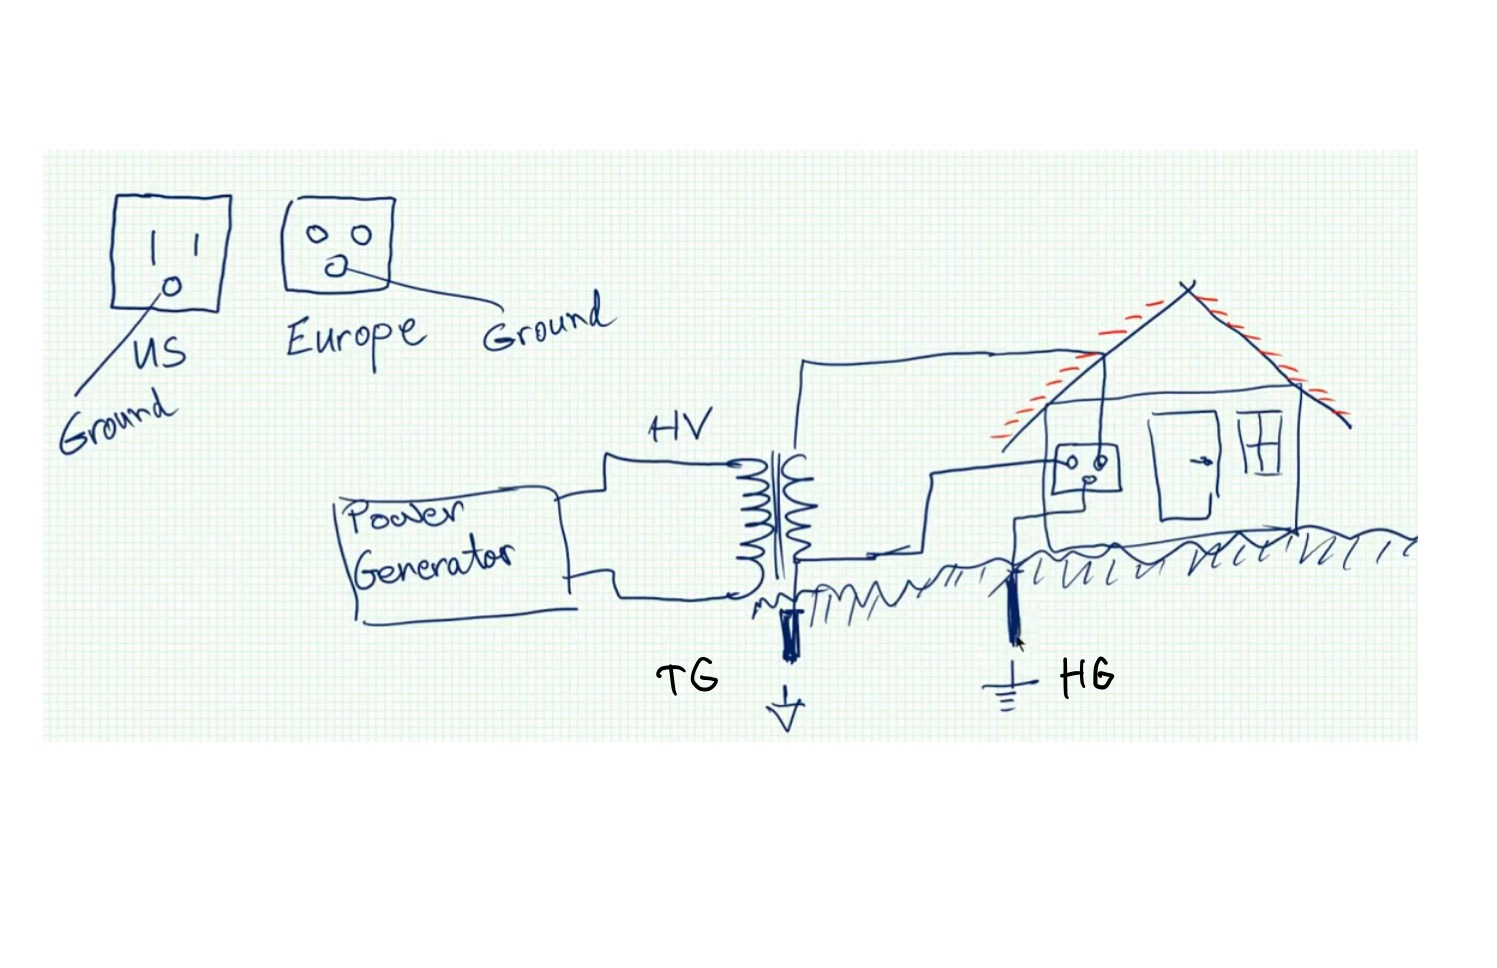 hight resolution of power is the link between the earth chasis terminal and the european electrical transformer diagram